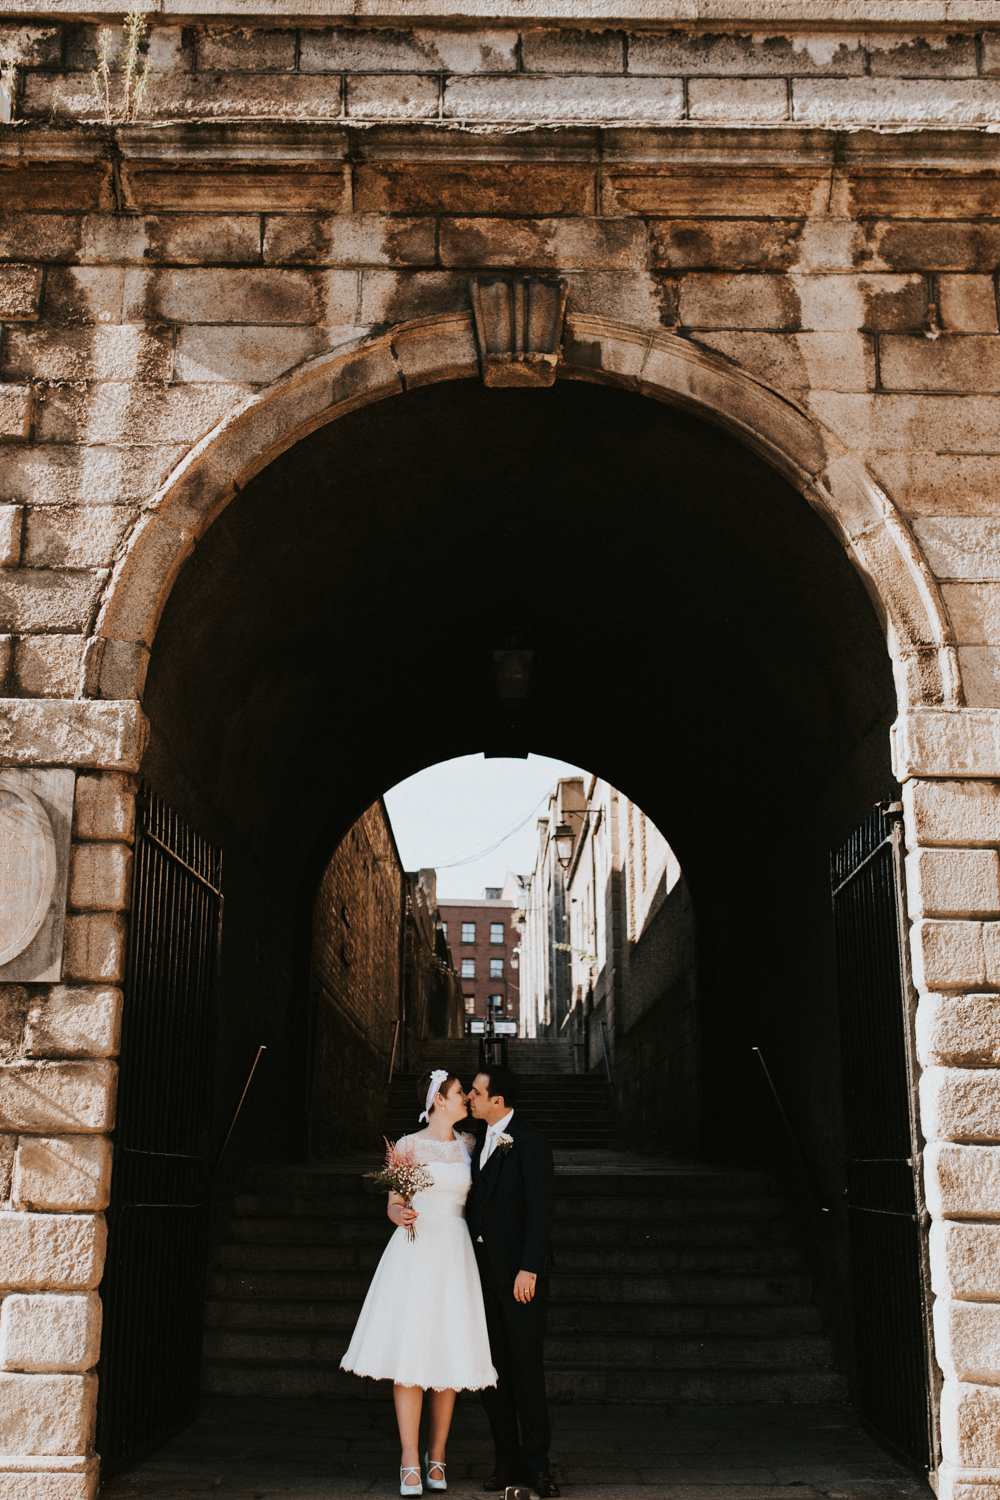 livia_figueiredo_wedding_photography_city_hall_anglers_rest_ireland_32.jpg